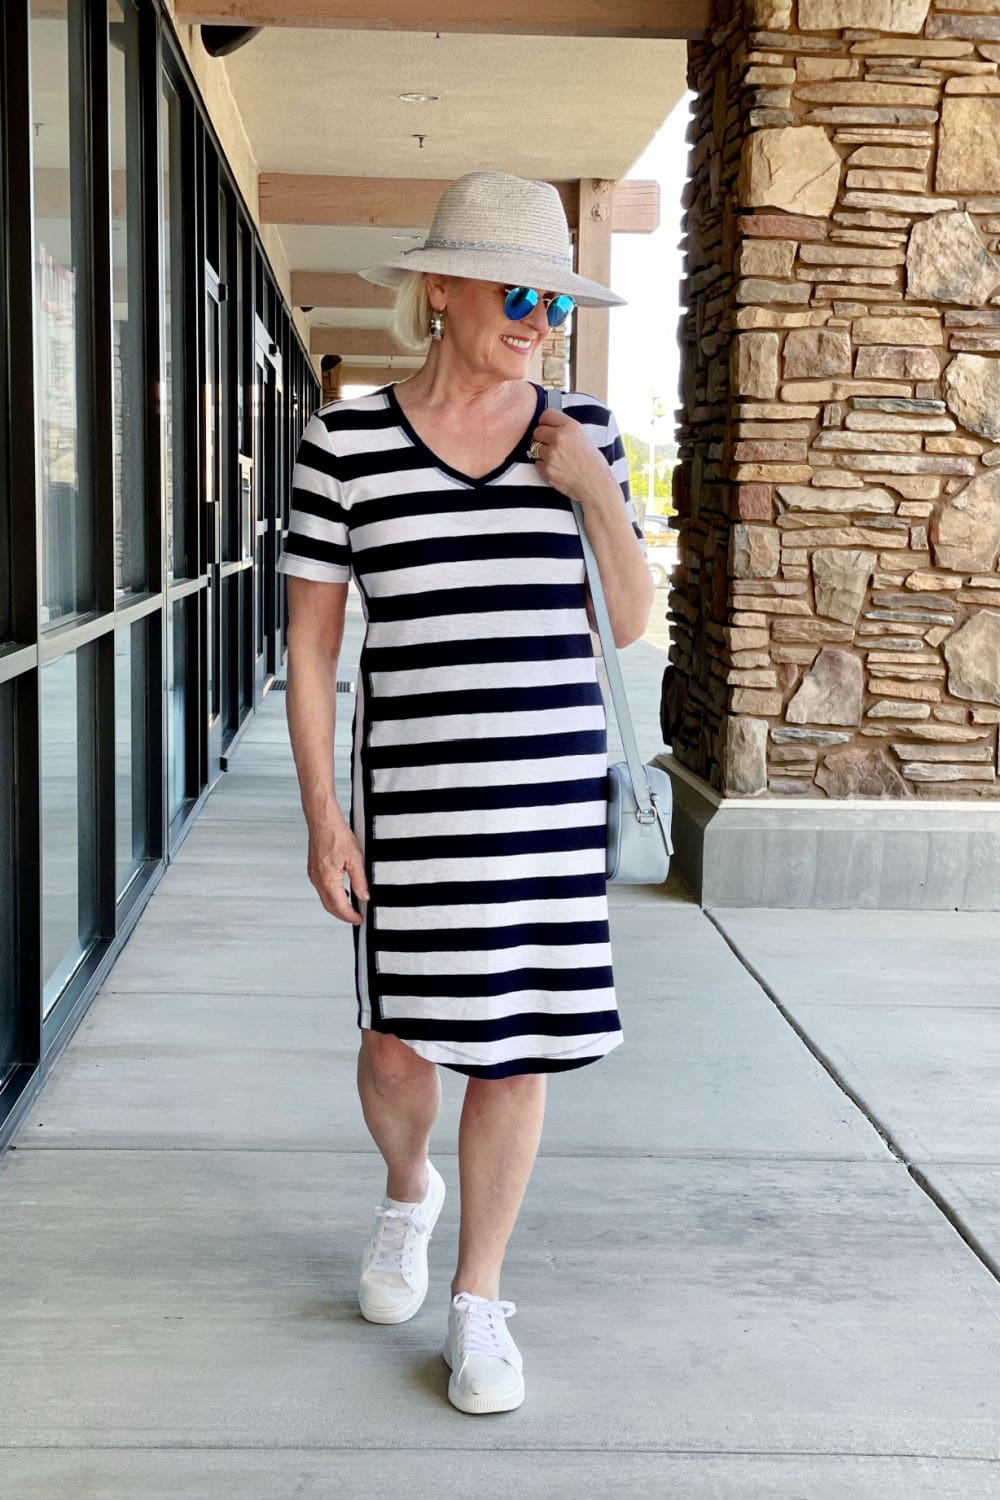 over 50 fashion blogger wearing striped tee dress and straw hat